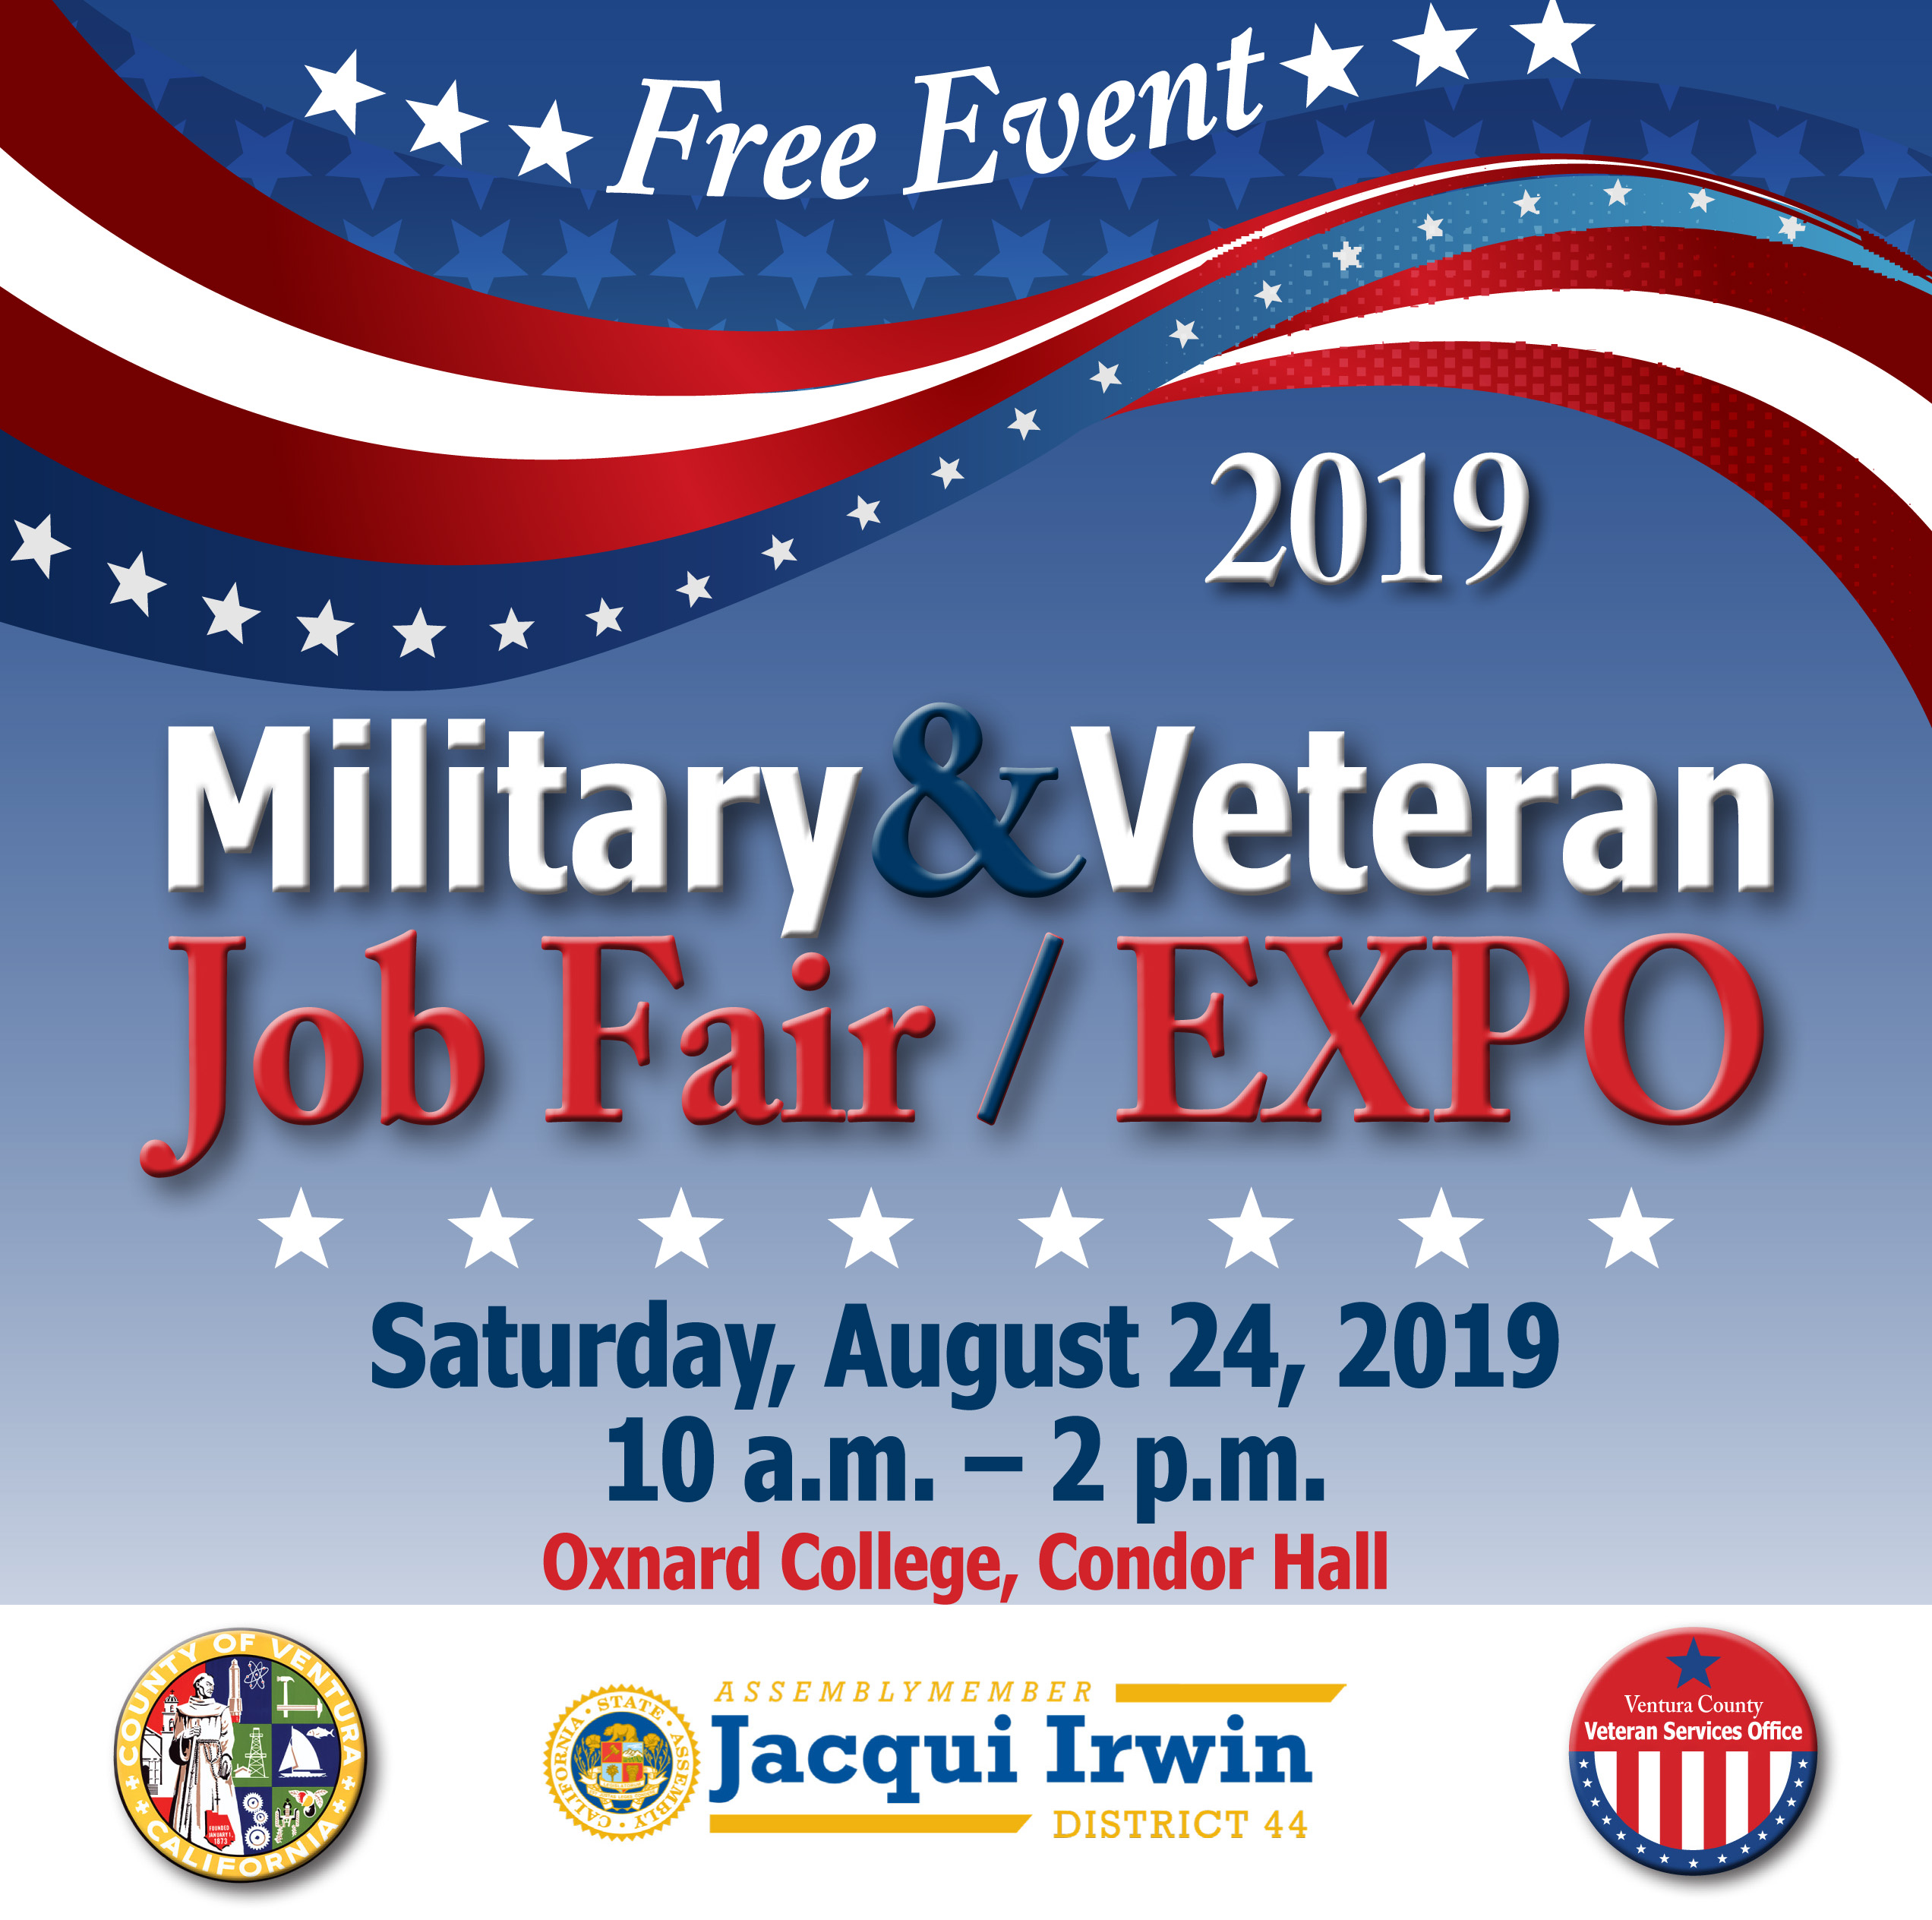 Free Event - 2019 Military & Veteran Job Fair & Expo at Oxnard College, August 24 from 10am to 2pm